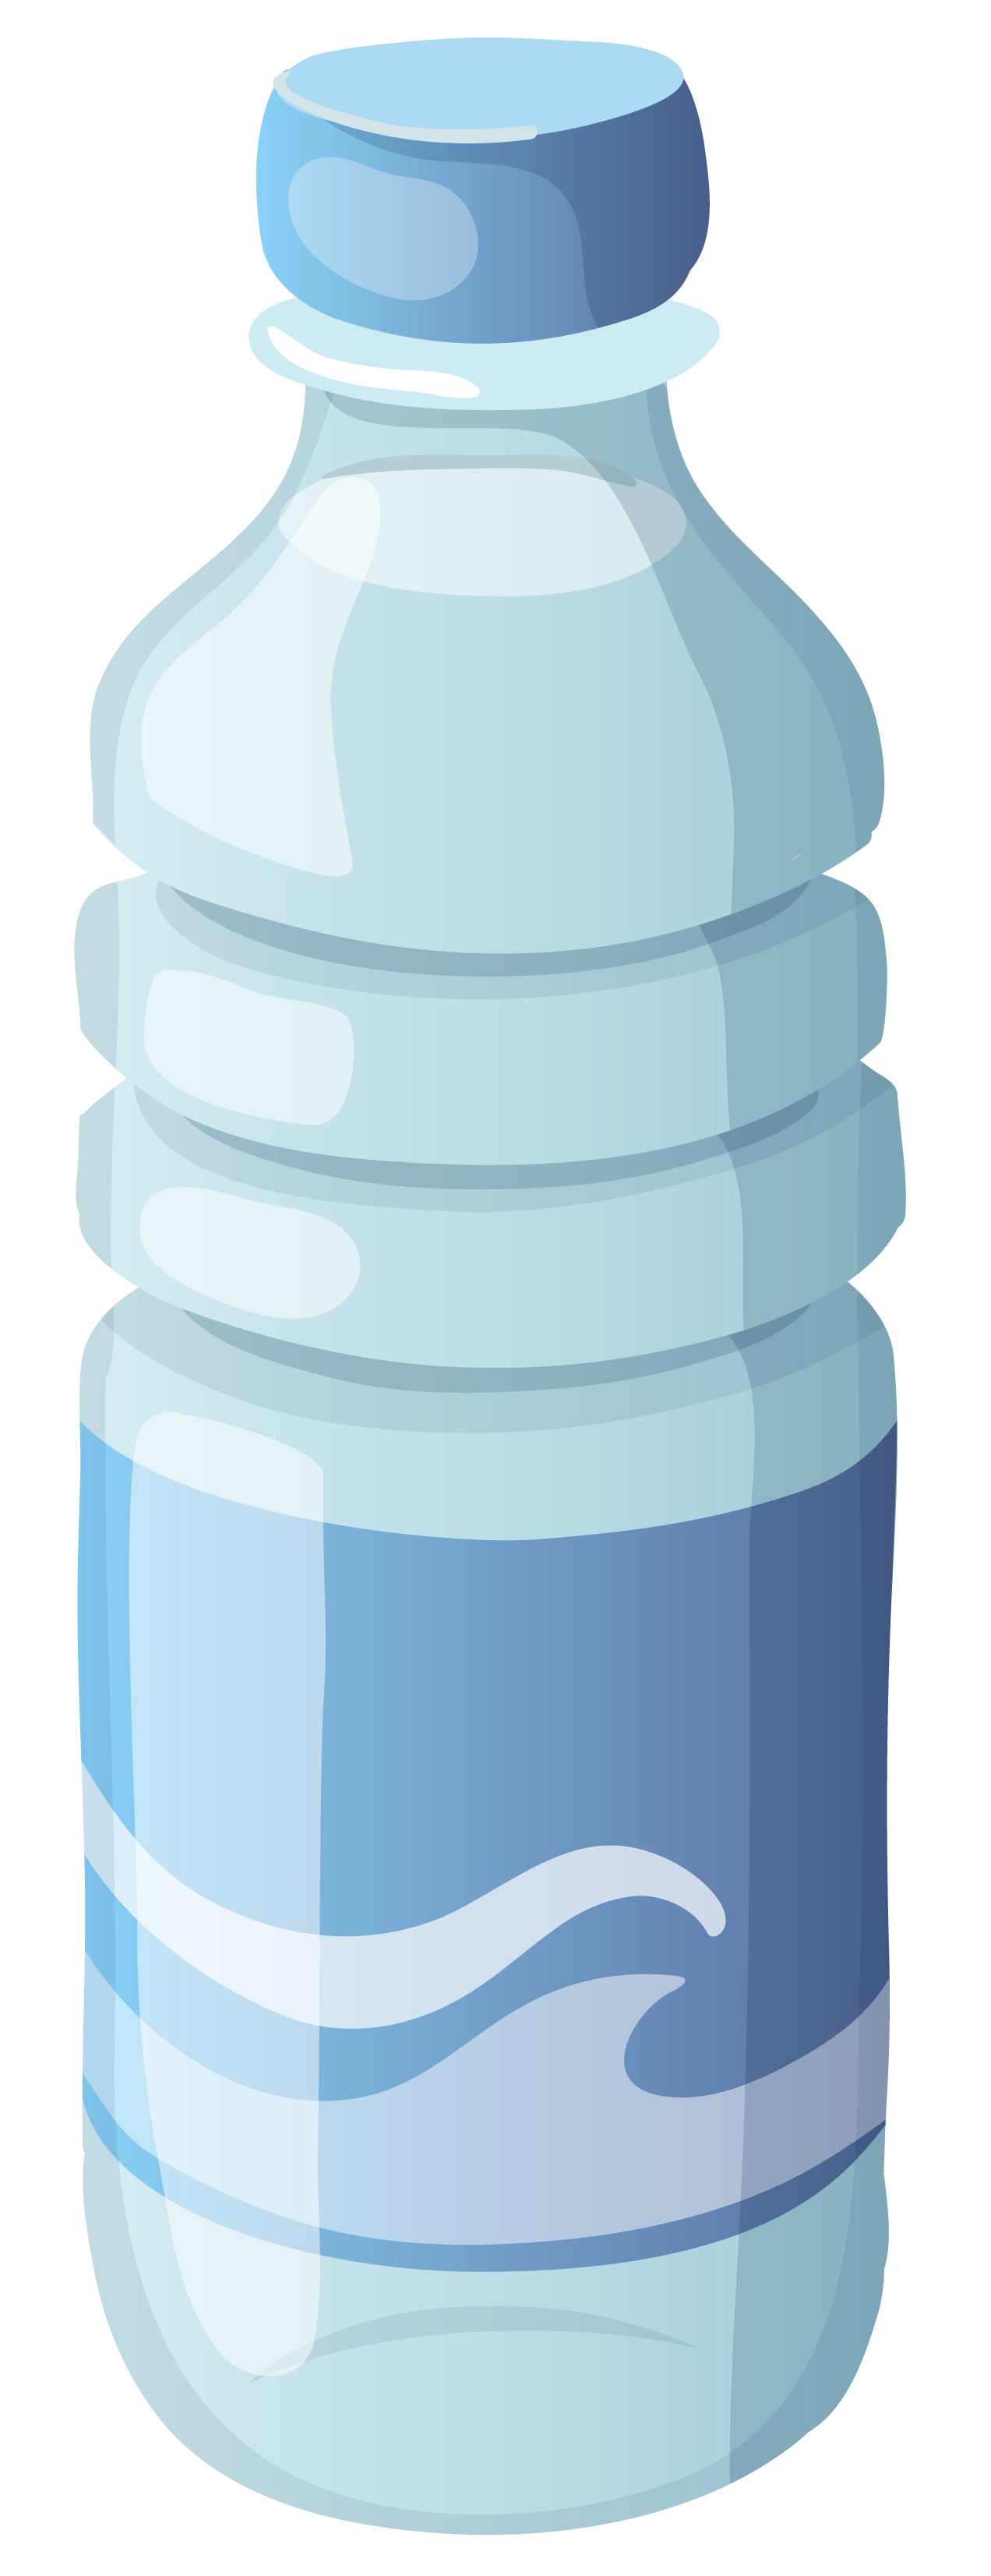 Small mineral clipart image. Water bottle png